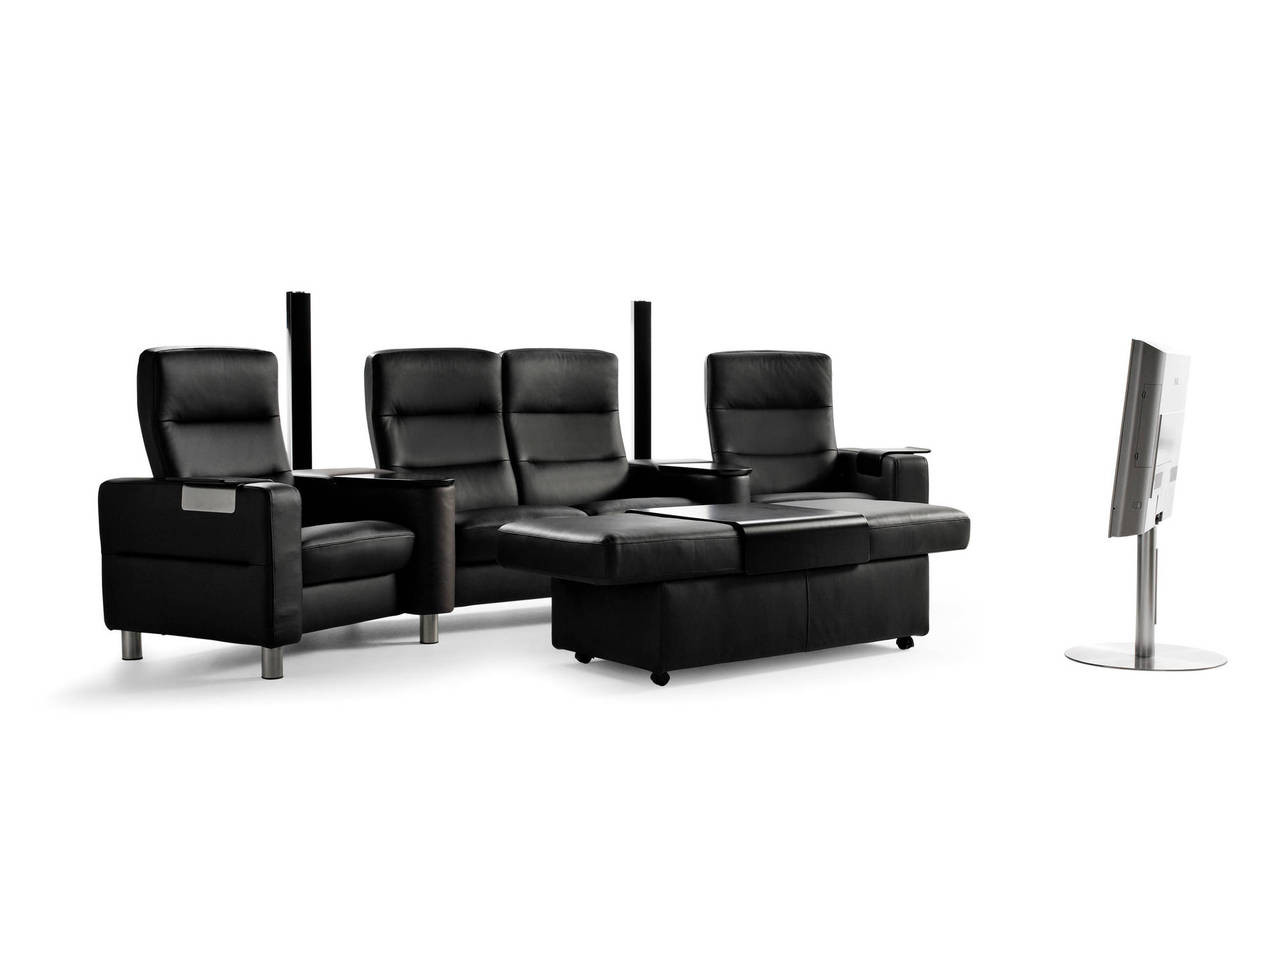 Stresless Ekornes Stressless Wave Home Theater Seating Sc 121